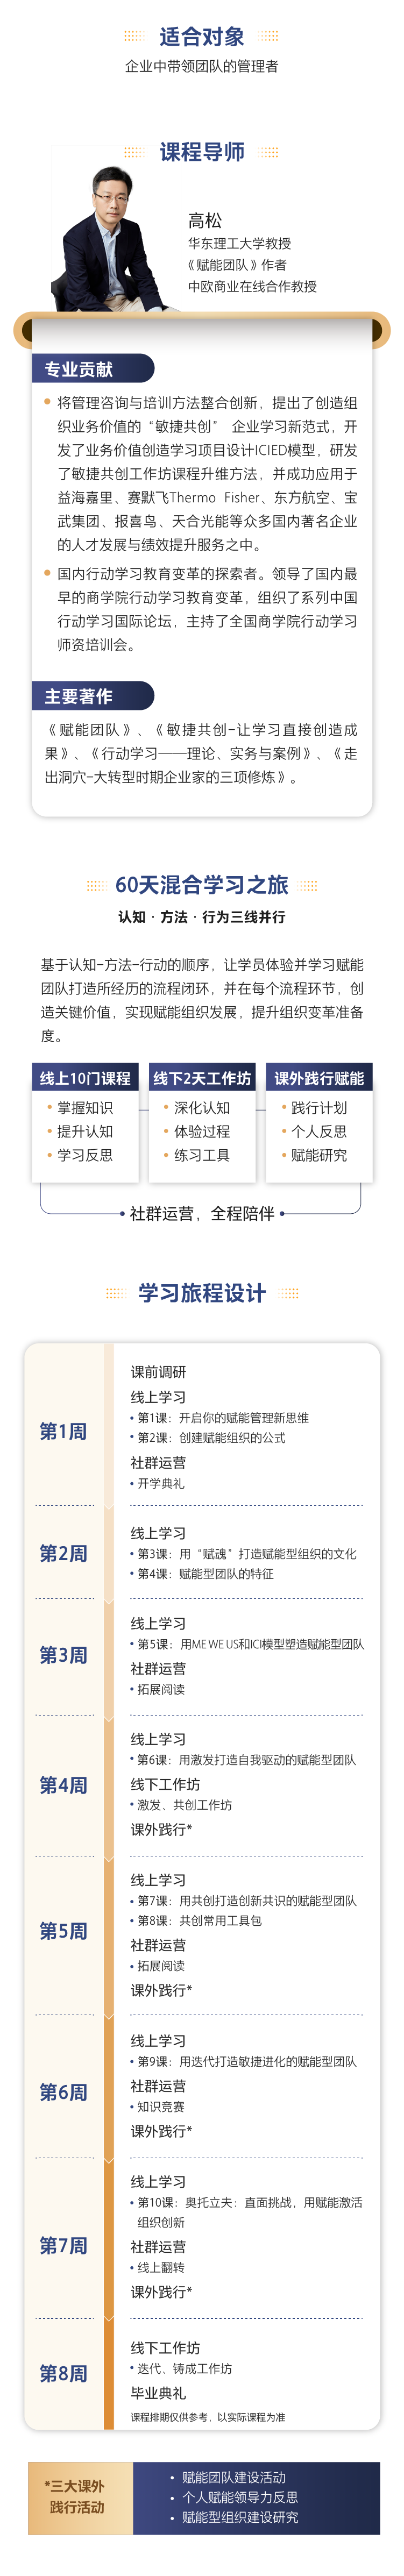 FIN-新课发布-1209-04.png